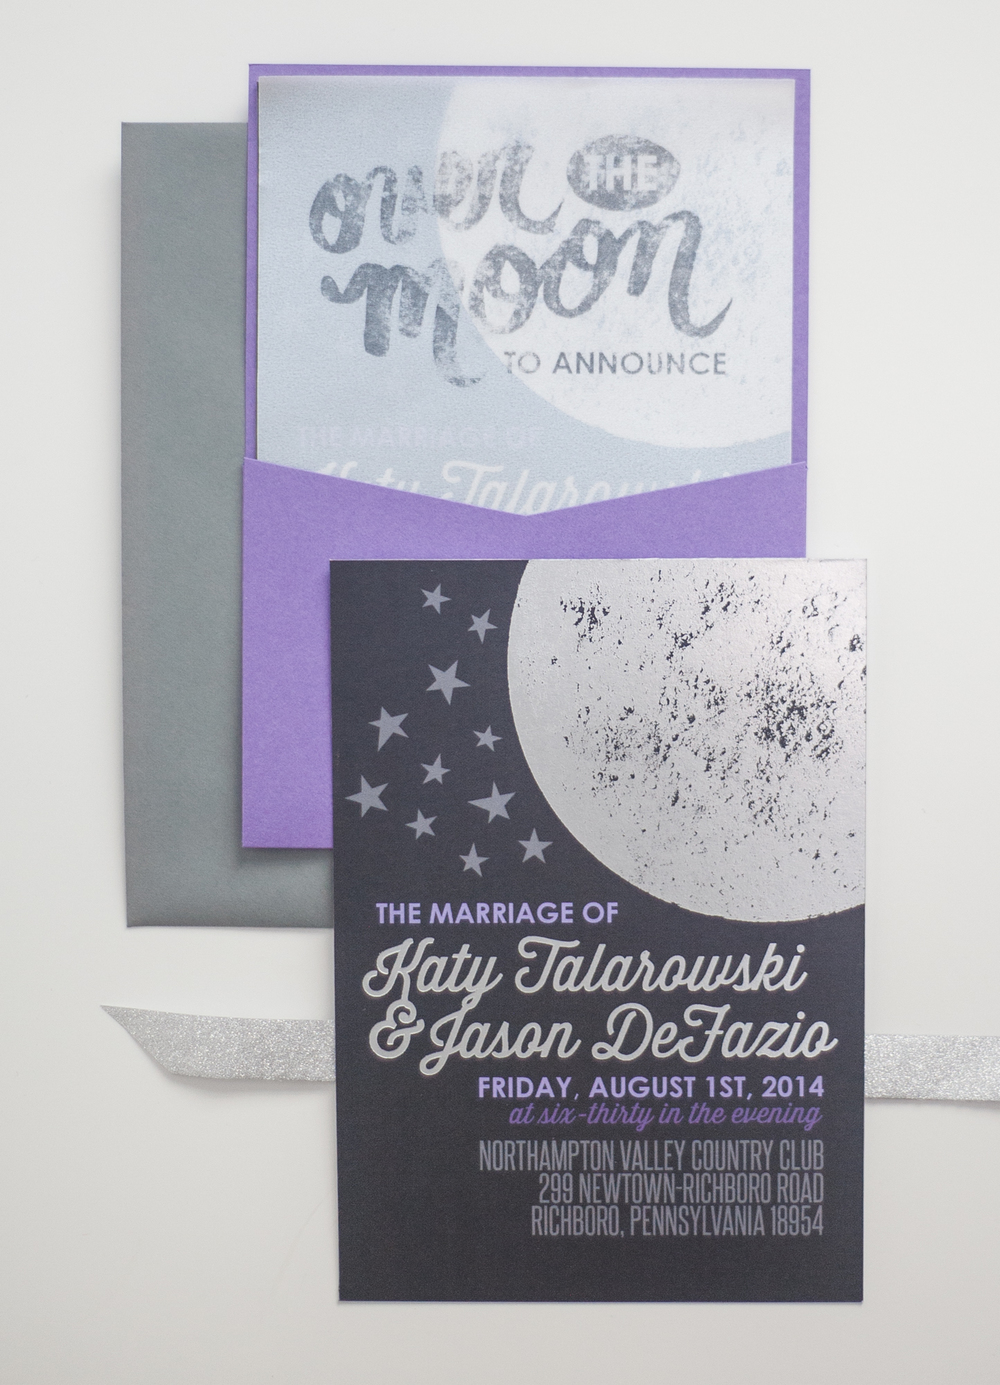 KATY + JASON'S WEDDING SUITE, 2014.